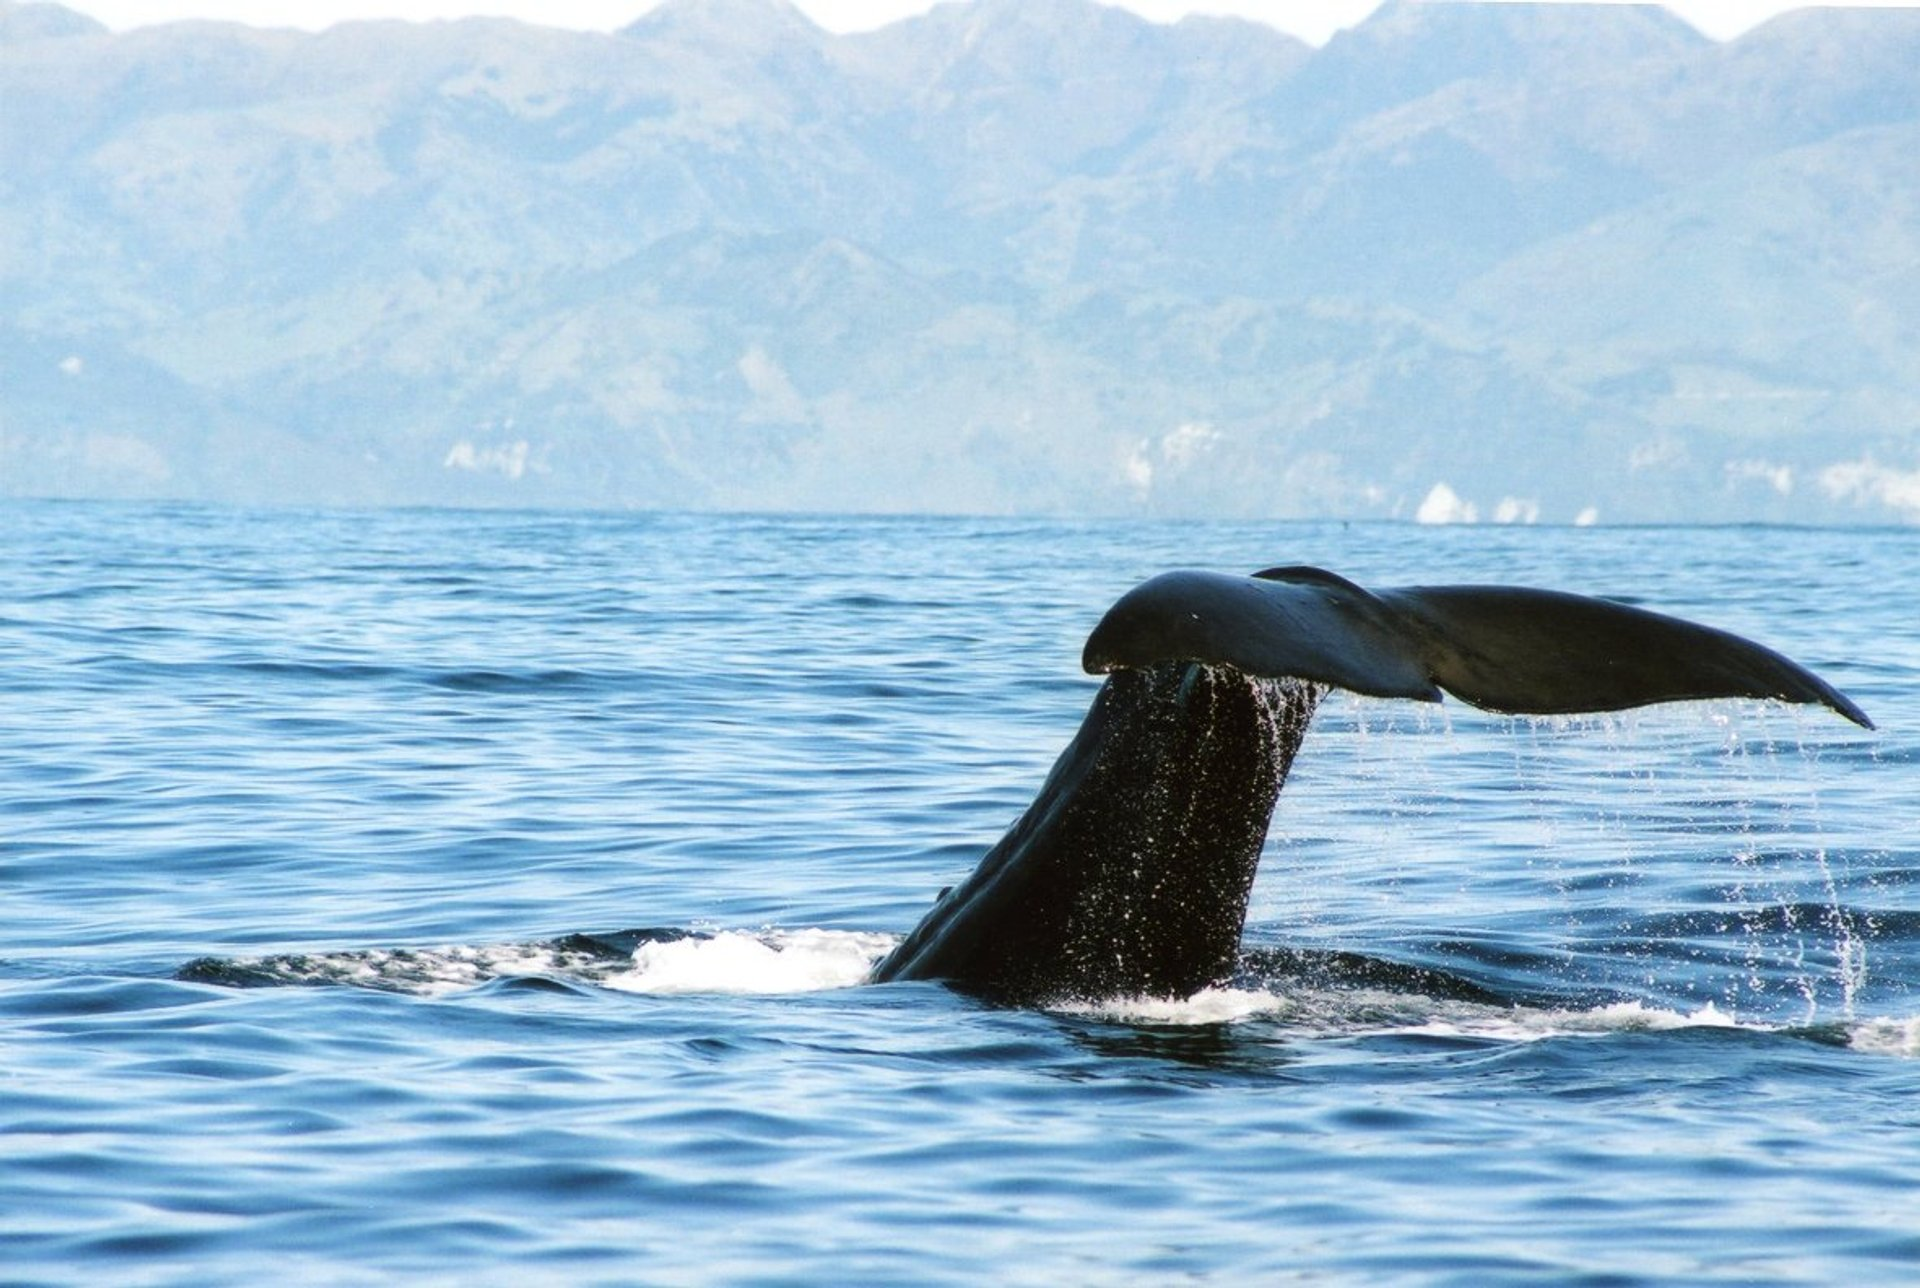 Whale Watching in New Zealand 2019 - Best Time